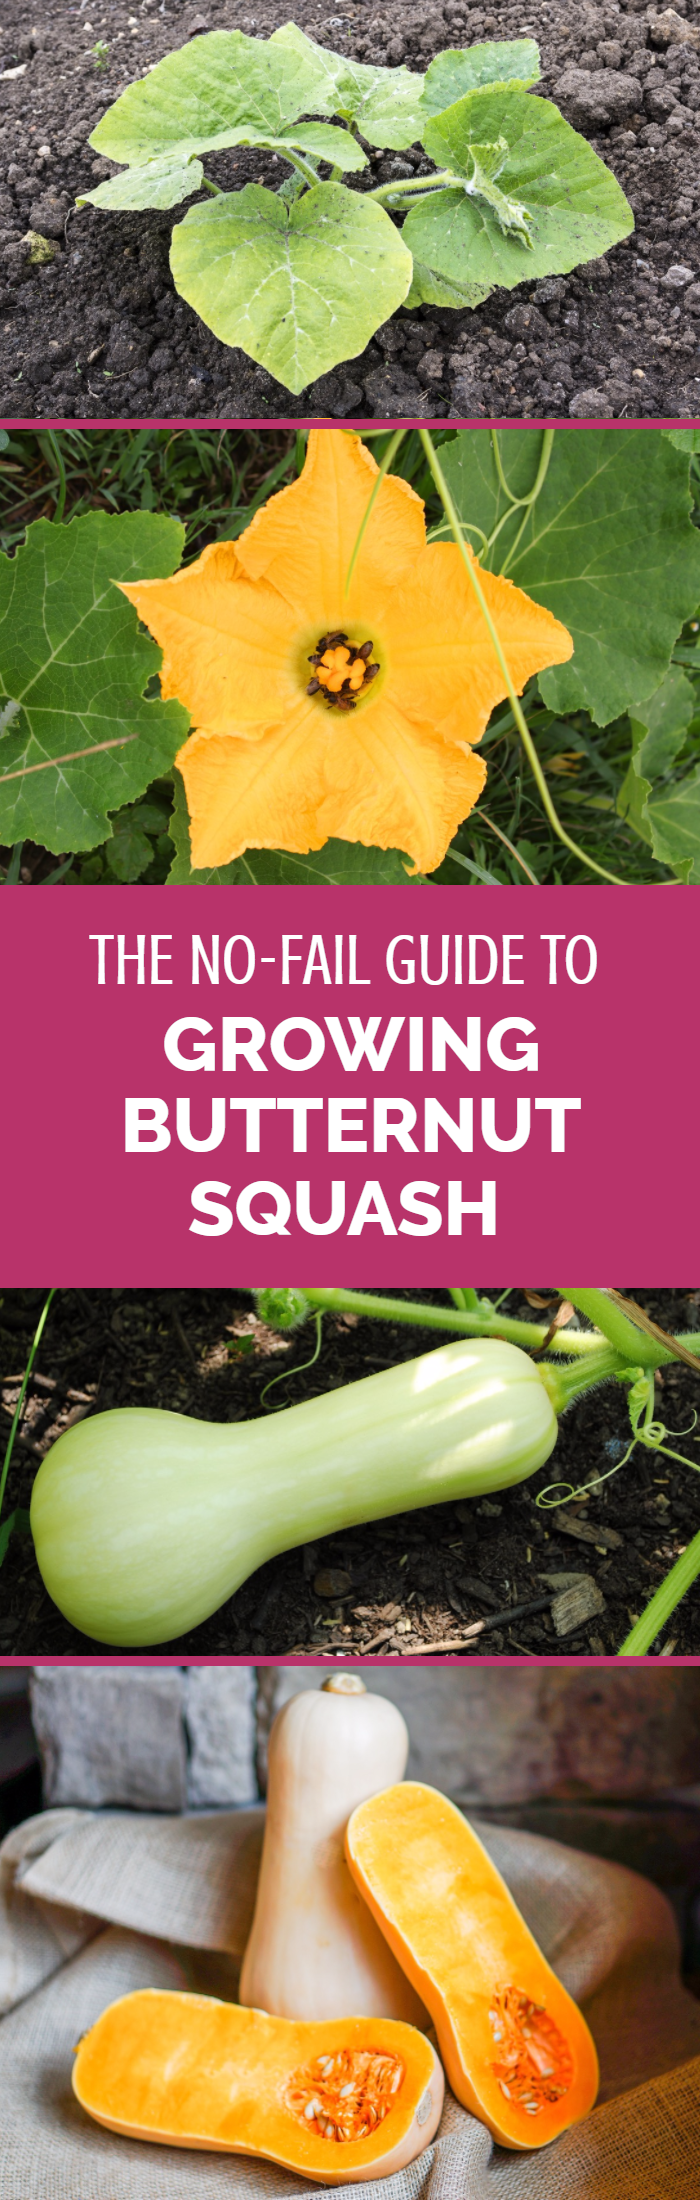 how to grow butternut squash butternut squash articles and gardens